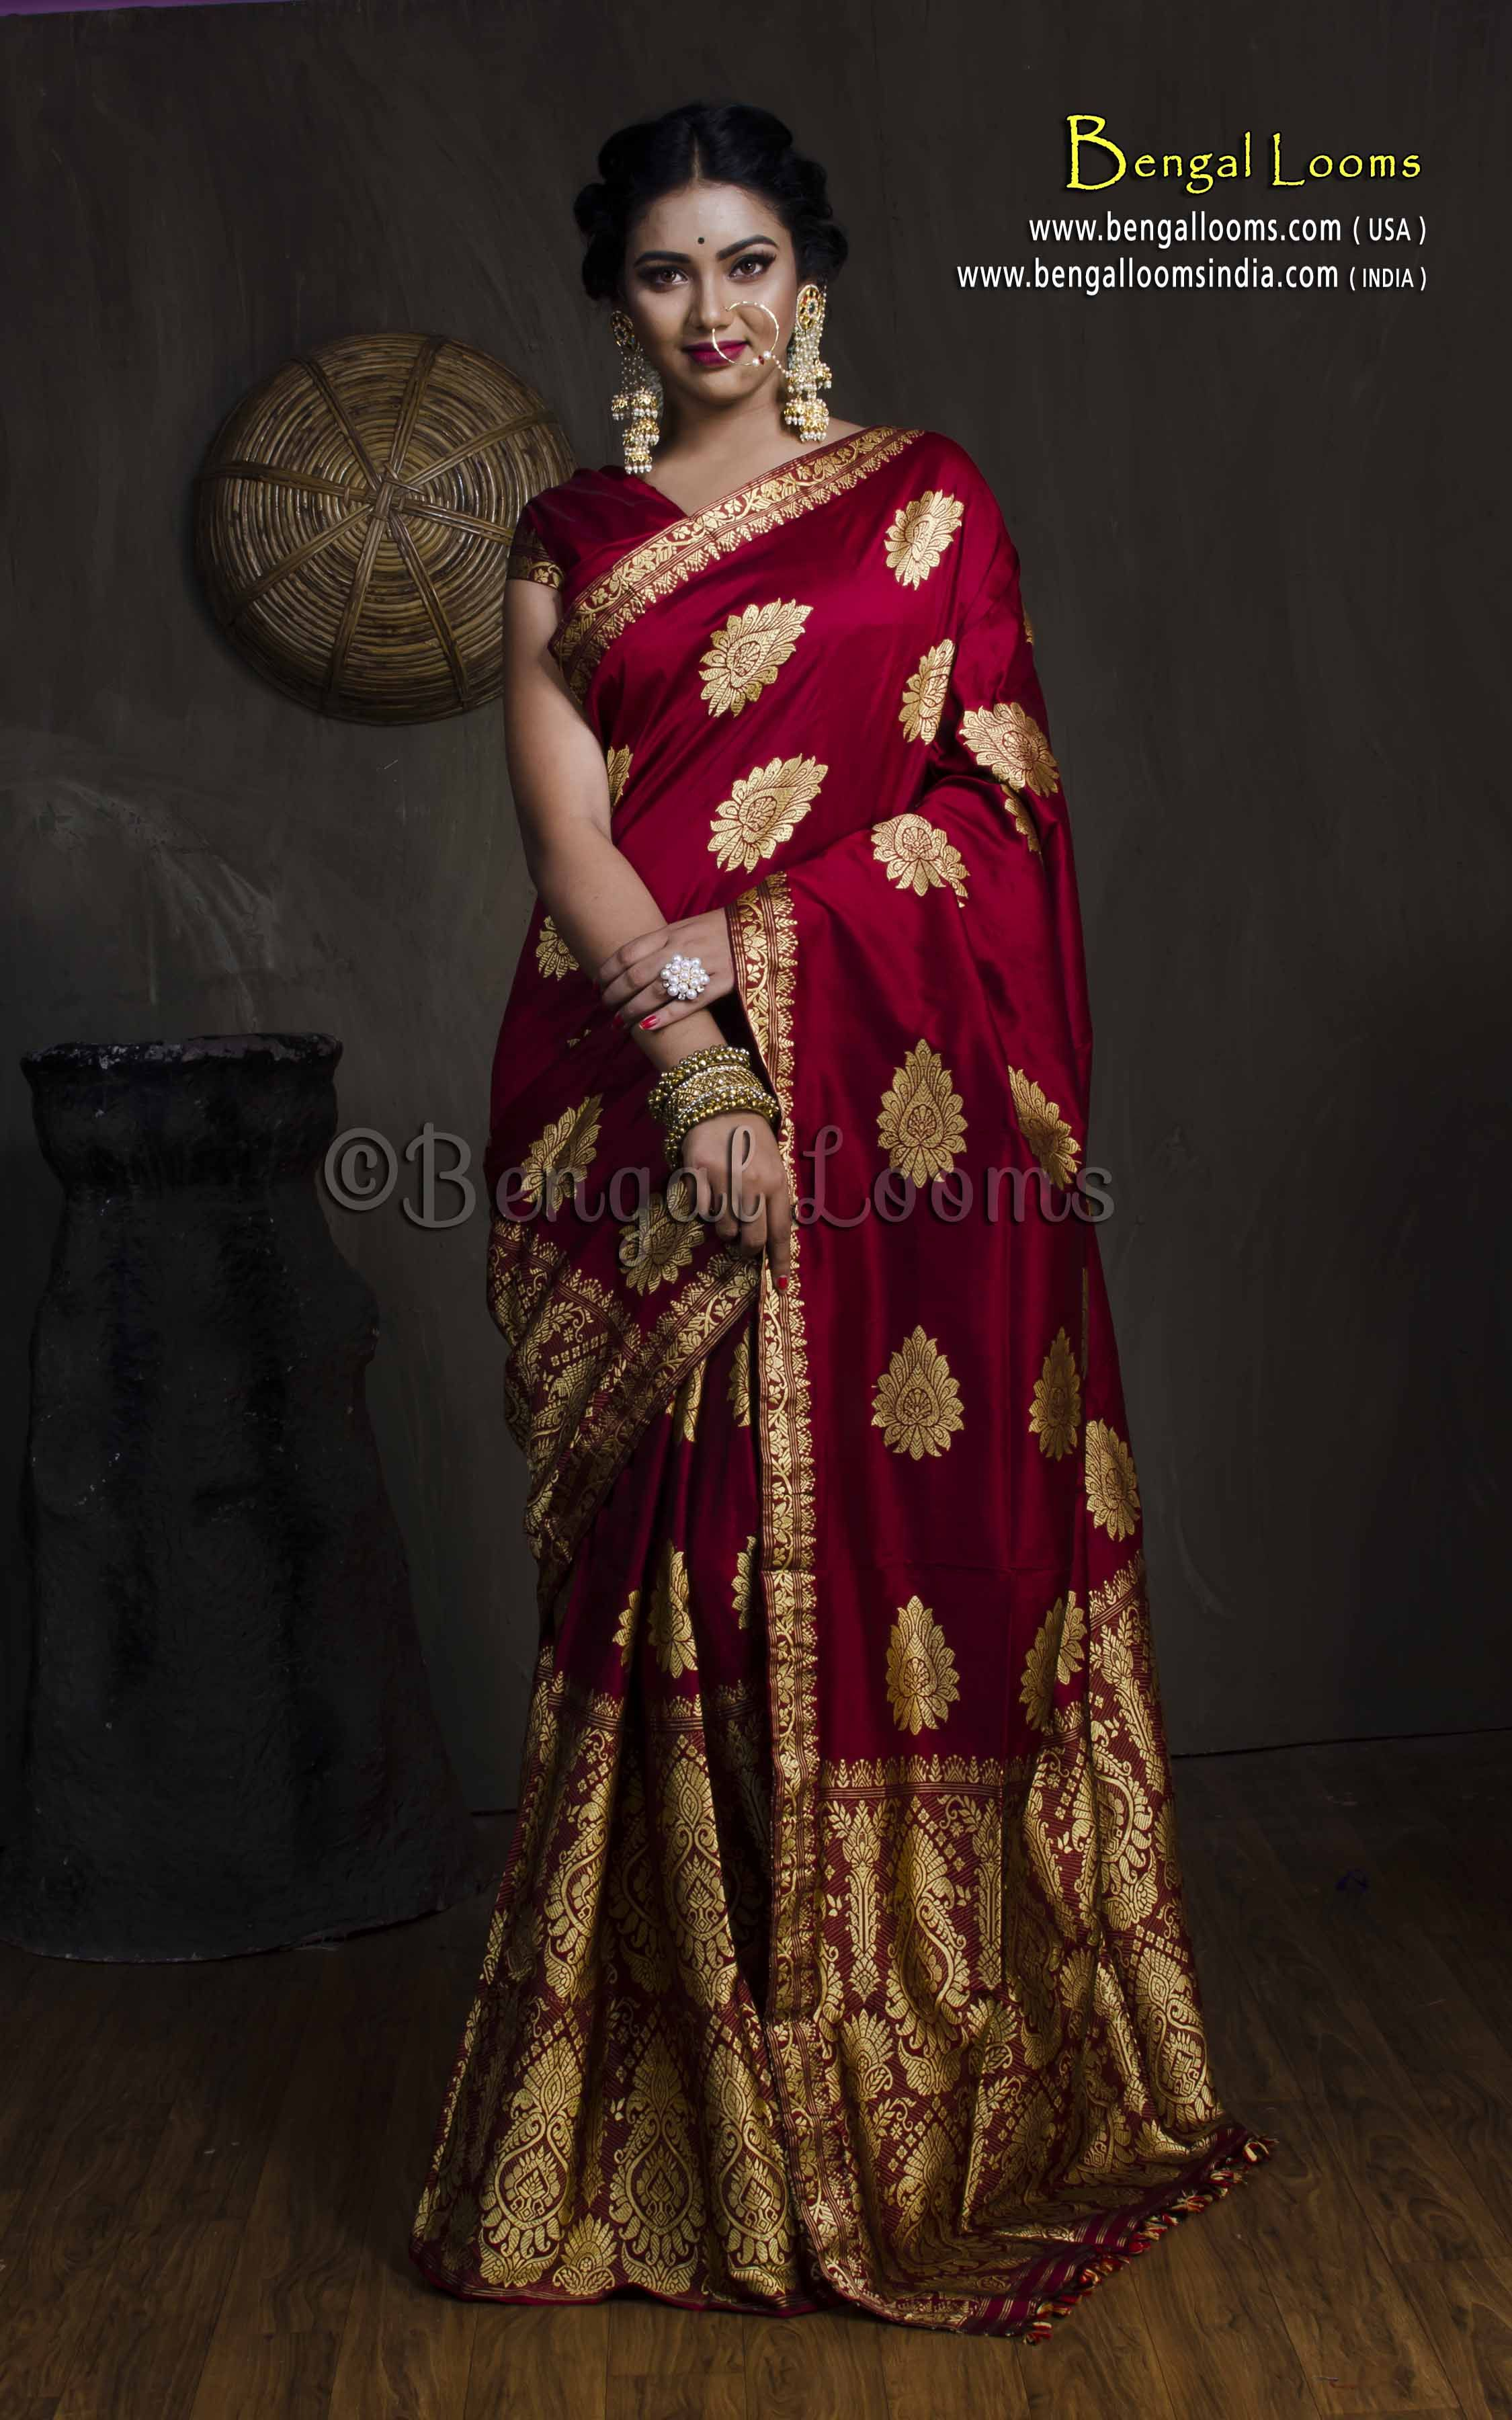 Engagement pattu saree images paat silk assamese mekhela chador in maroon and gold  home decor in